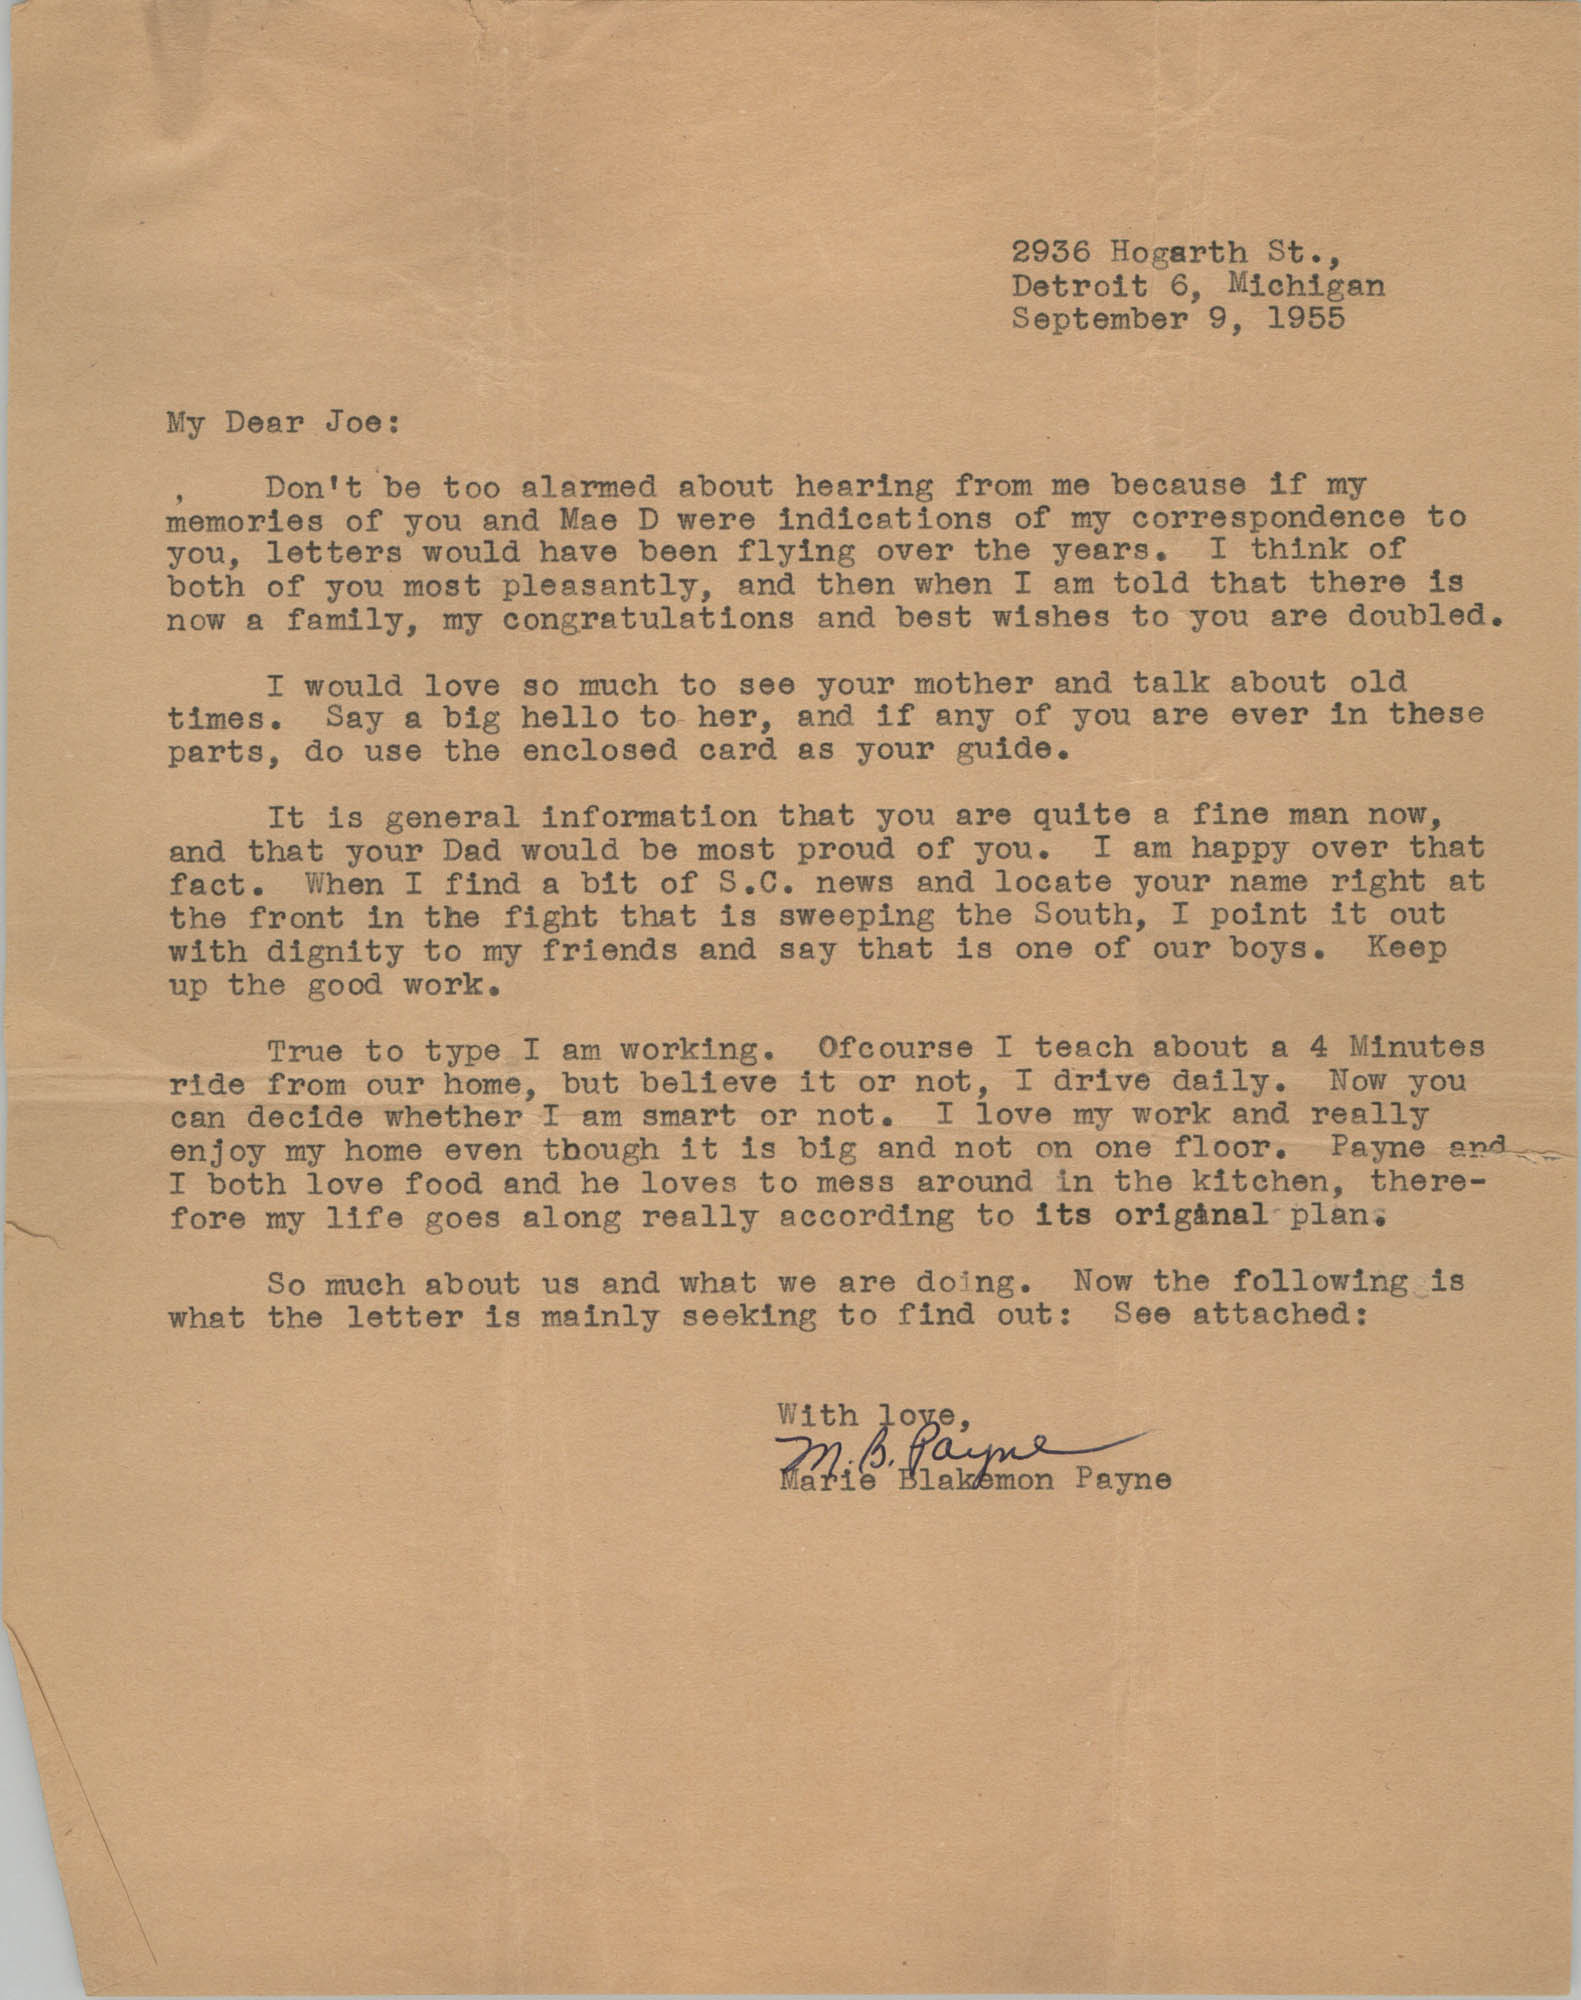 Letter from Marie Blakemon Payne to J. Arthur Brown, September 9, 1955